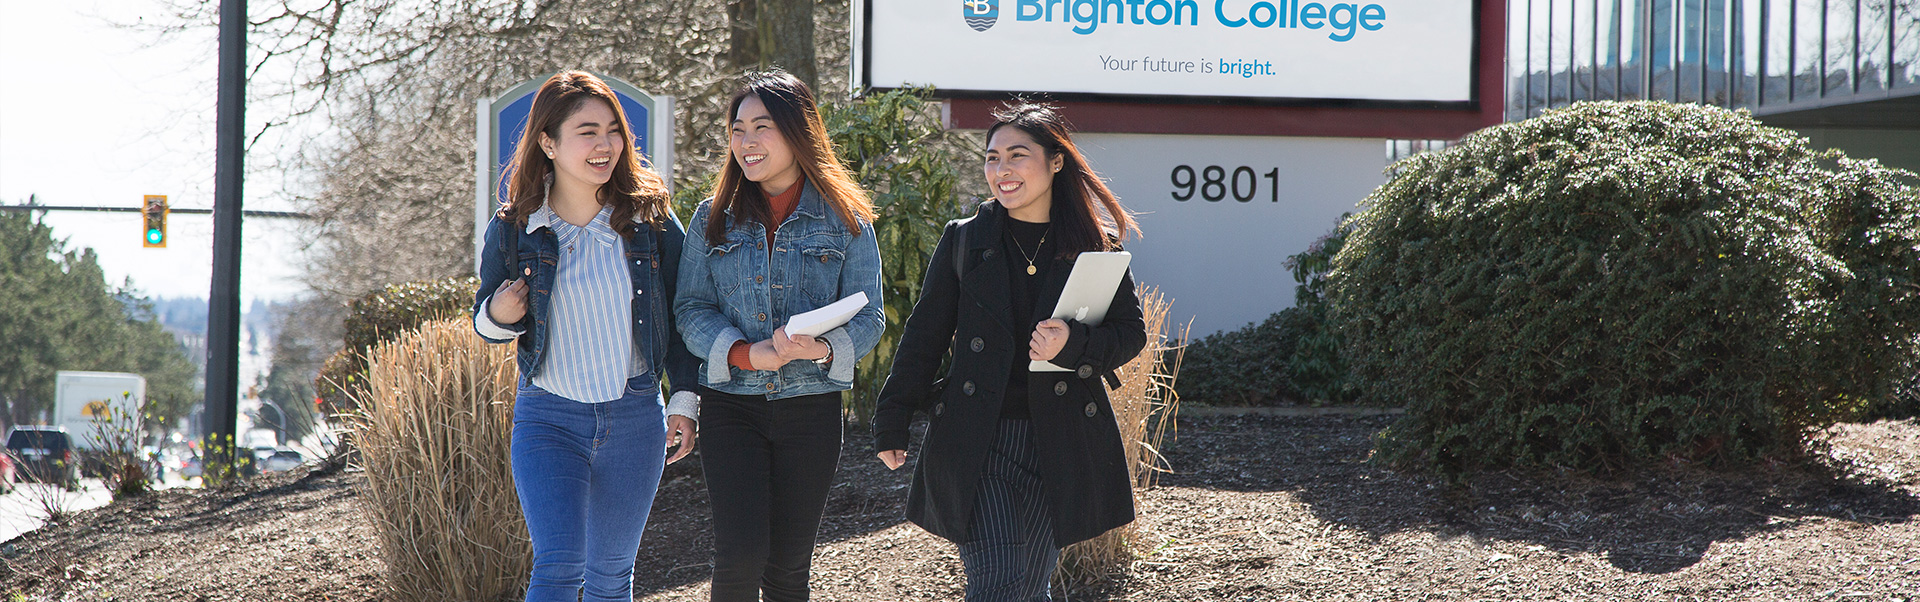 Brighton College has two conveniently located campuses in the hearts of Burnaby and Surrey.